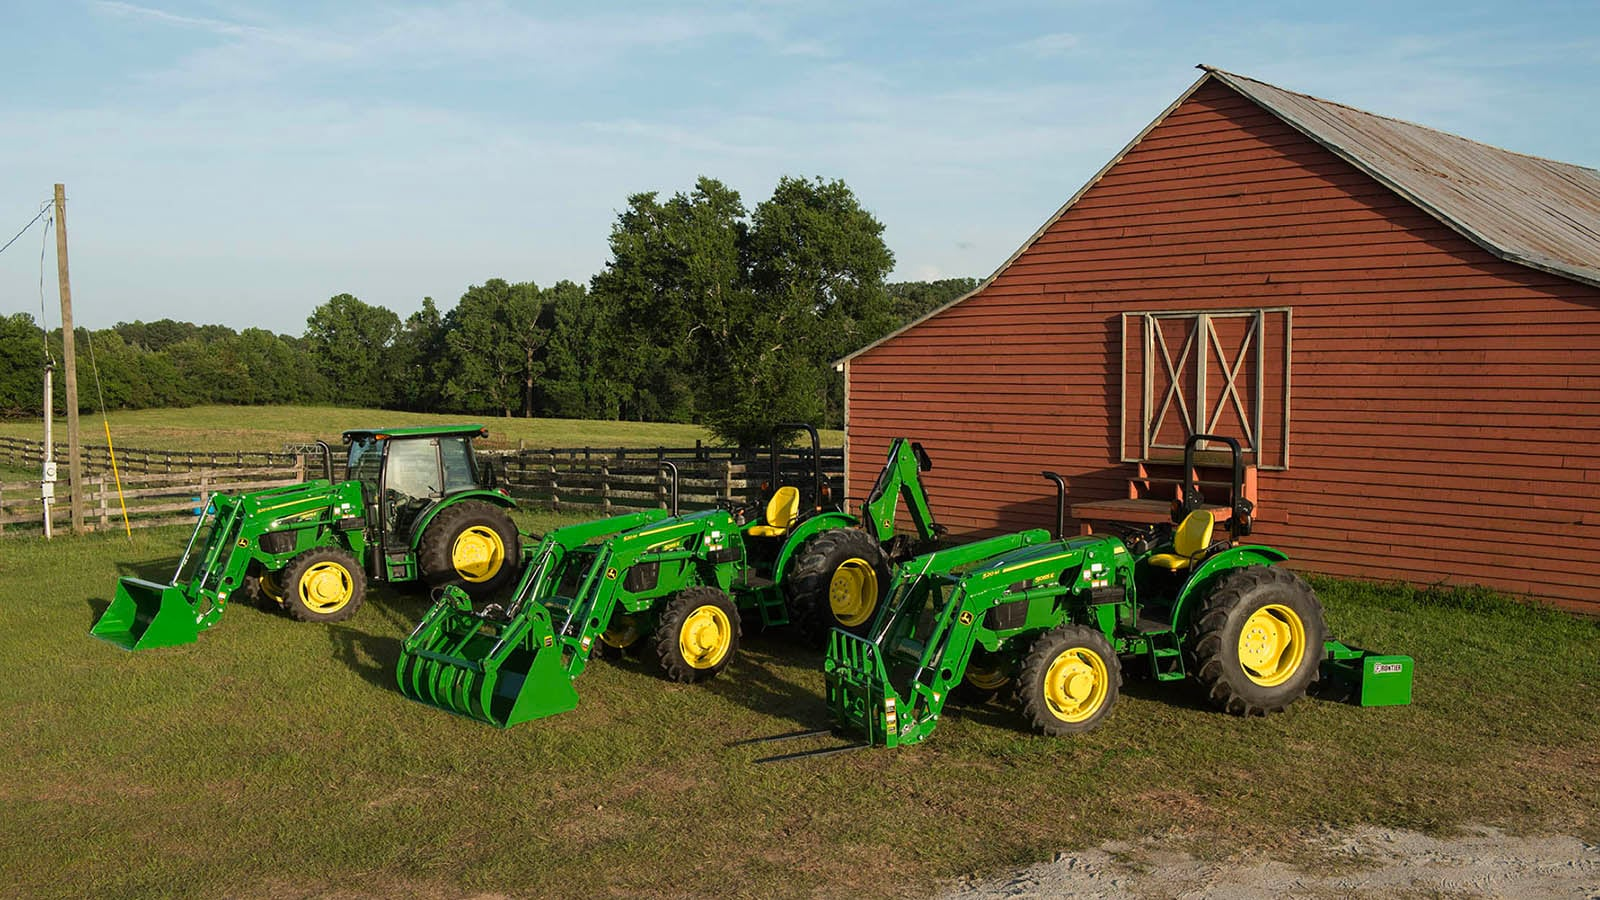 John Deere is updating its 3 cylinder versions of its 5E Series Utility Tractors for model year 2018 with four models ranging from 50-to 73-engine horsepower.